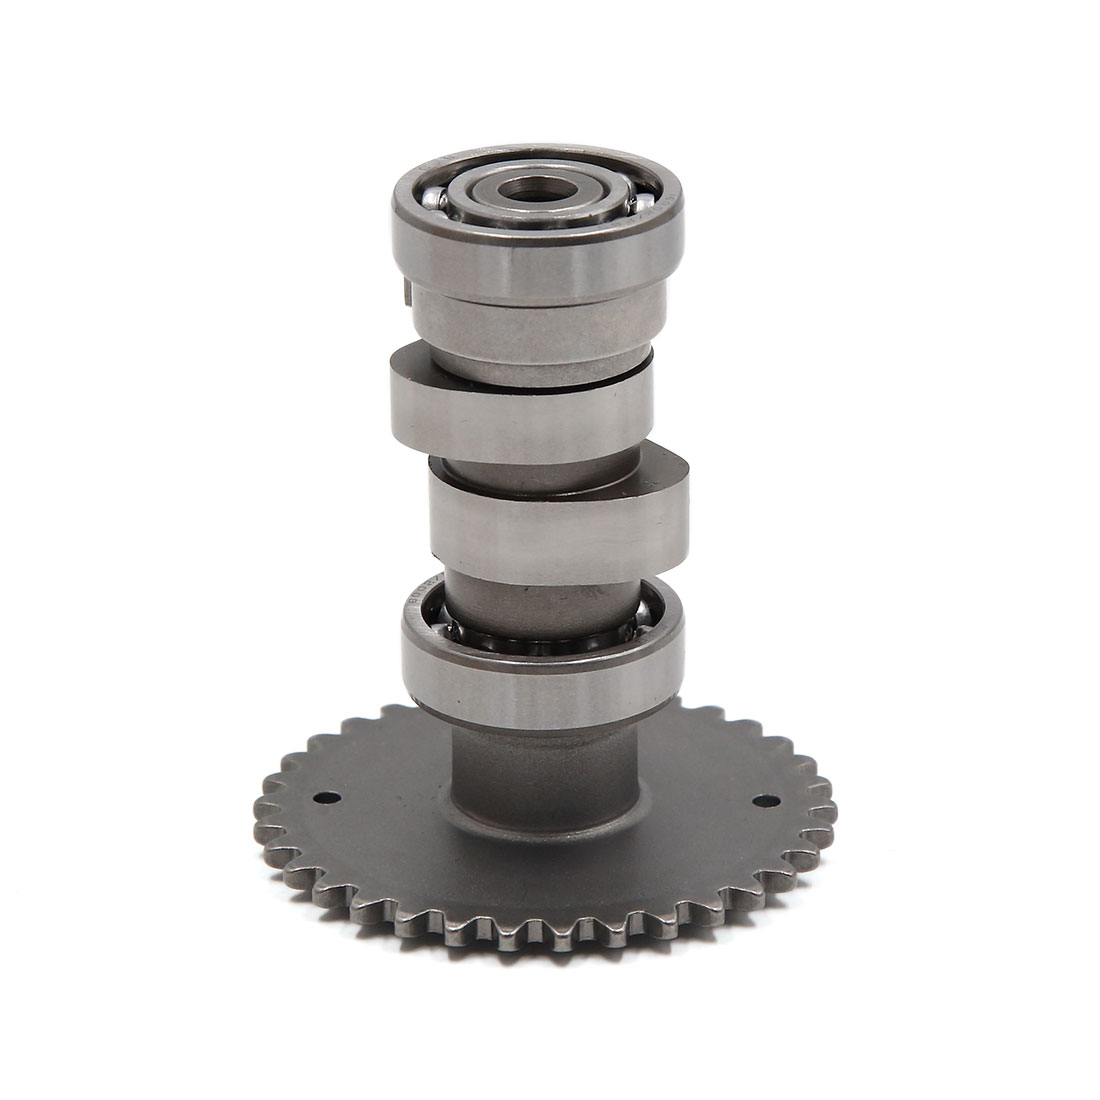 Steel Motorcycle Scooter Timing Gear Intake Exhaust Cam Camshaft for Honda WH125 - image 1 of 4